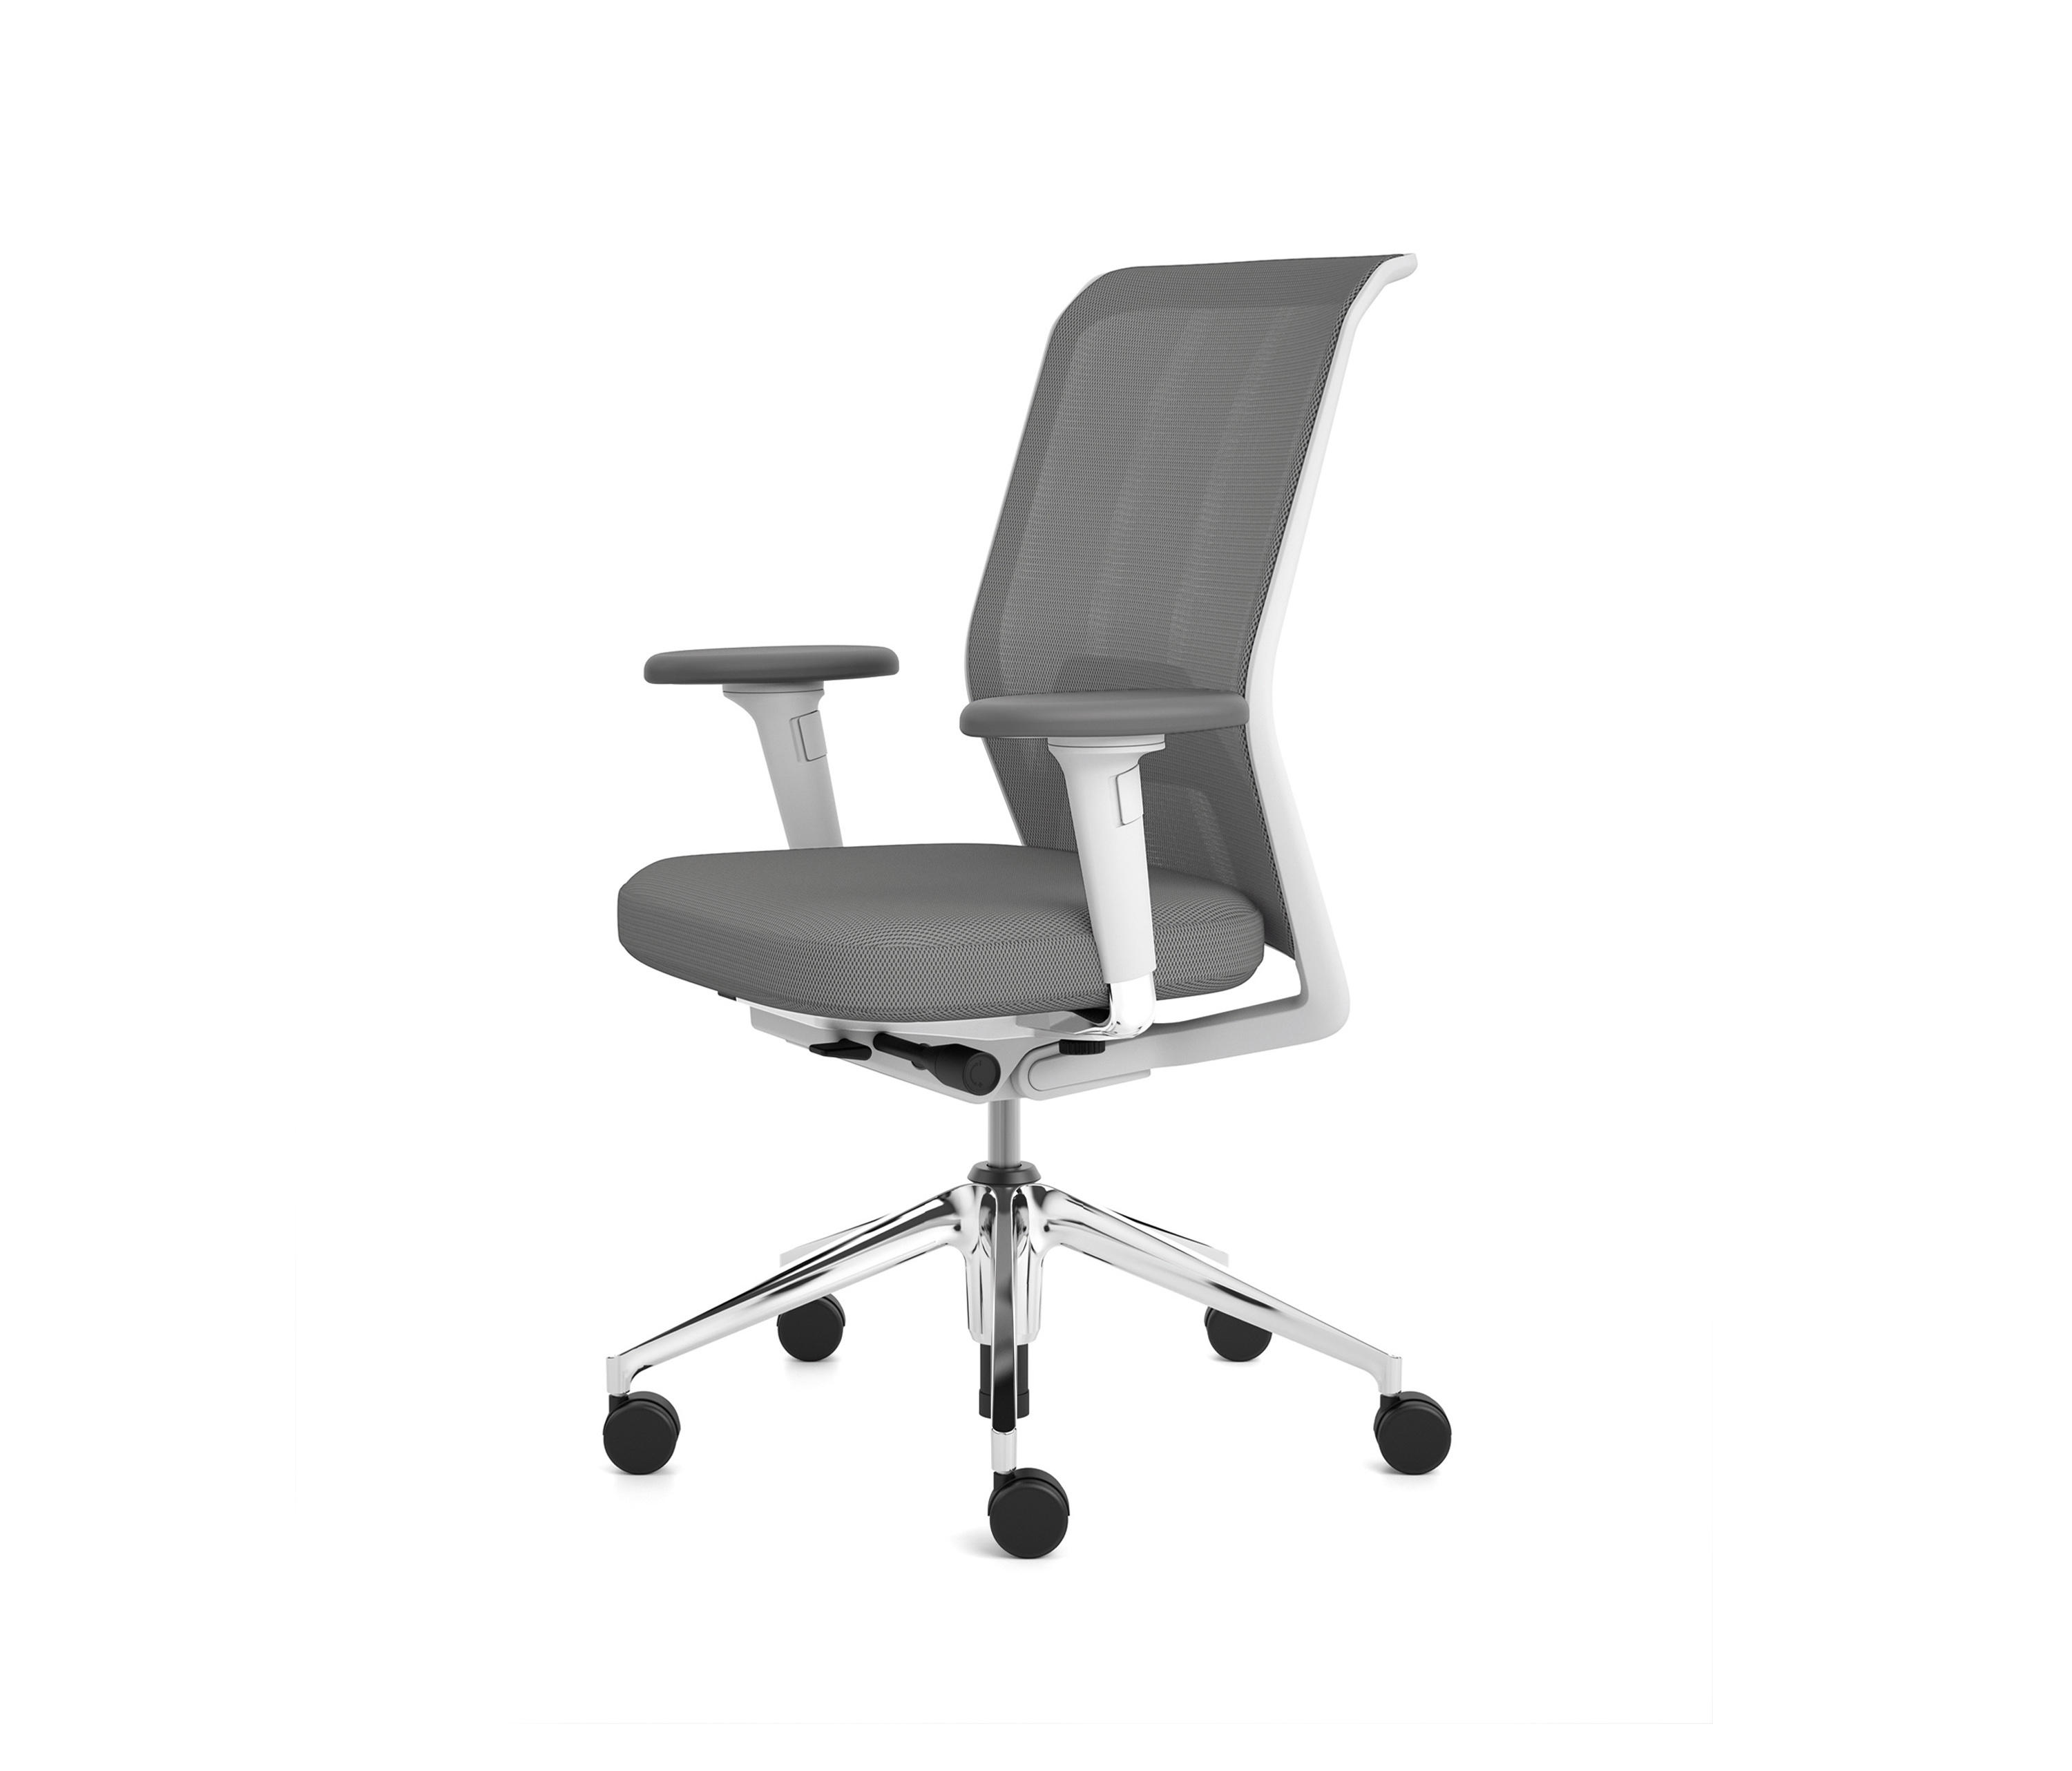 ID MESH Task chairs from Vitra